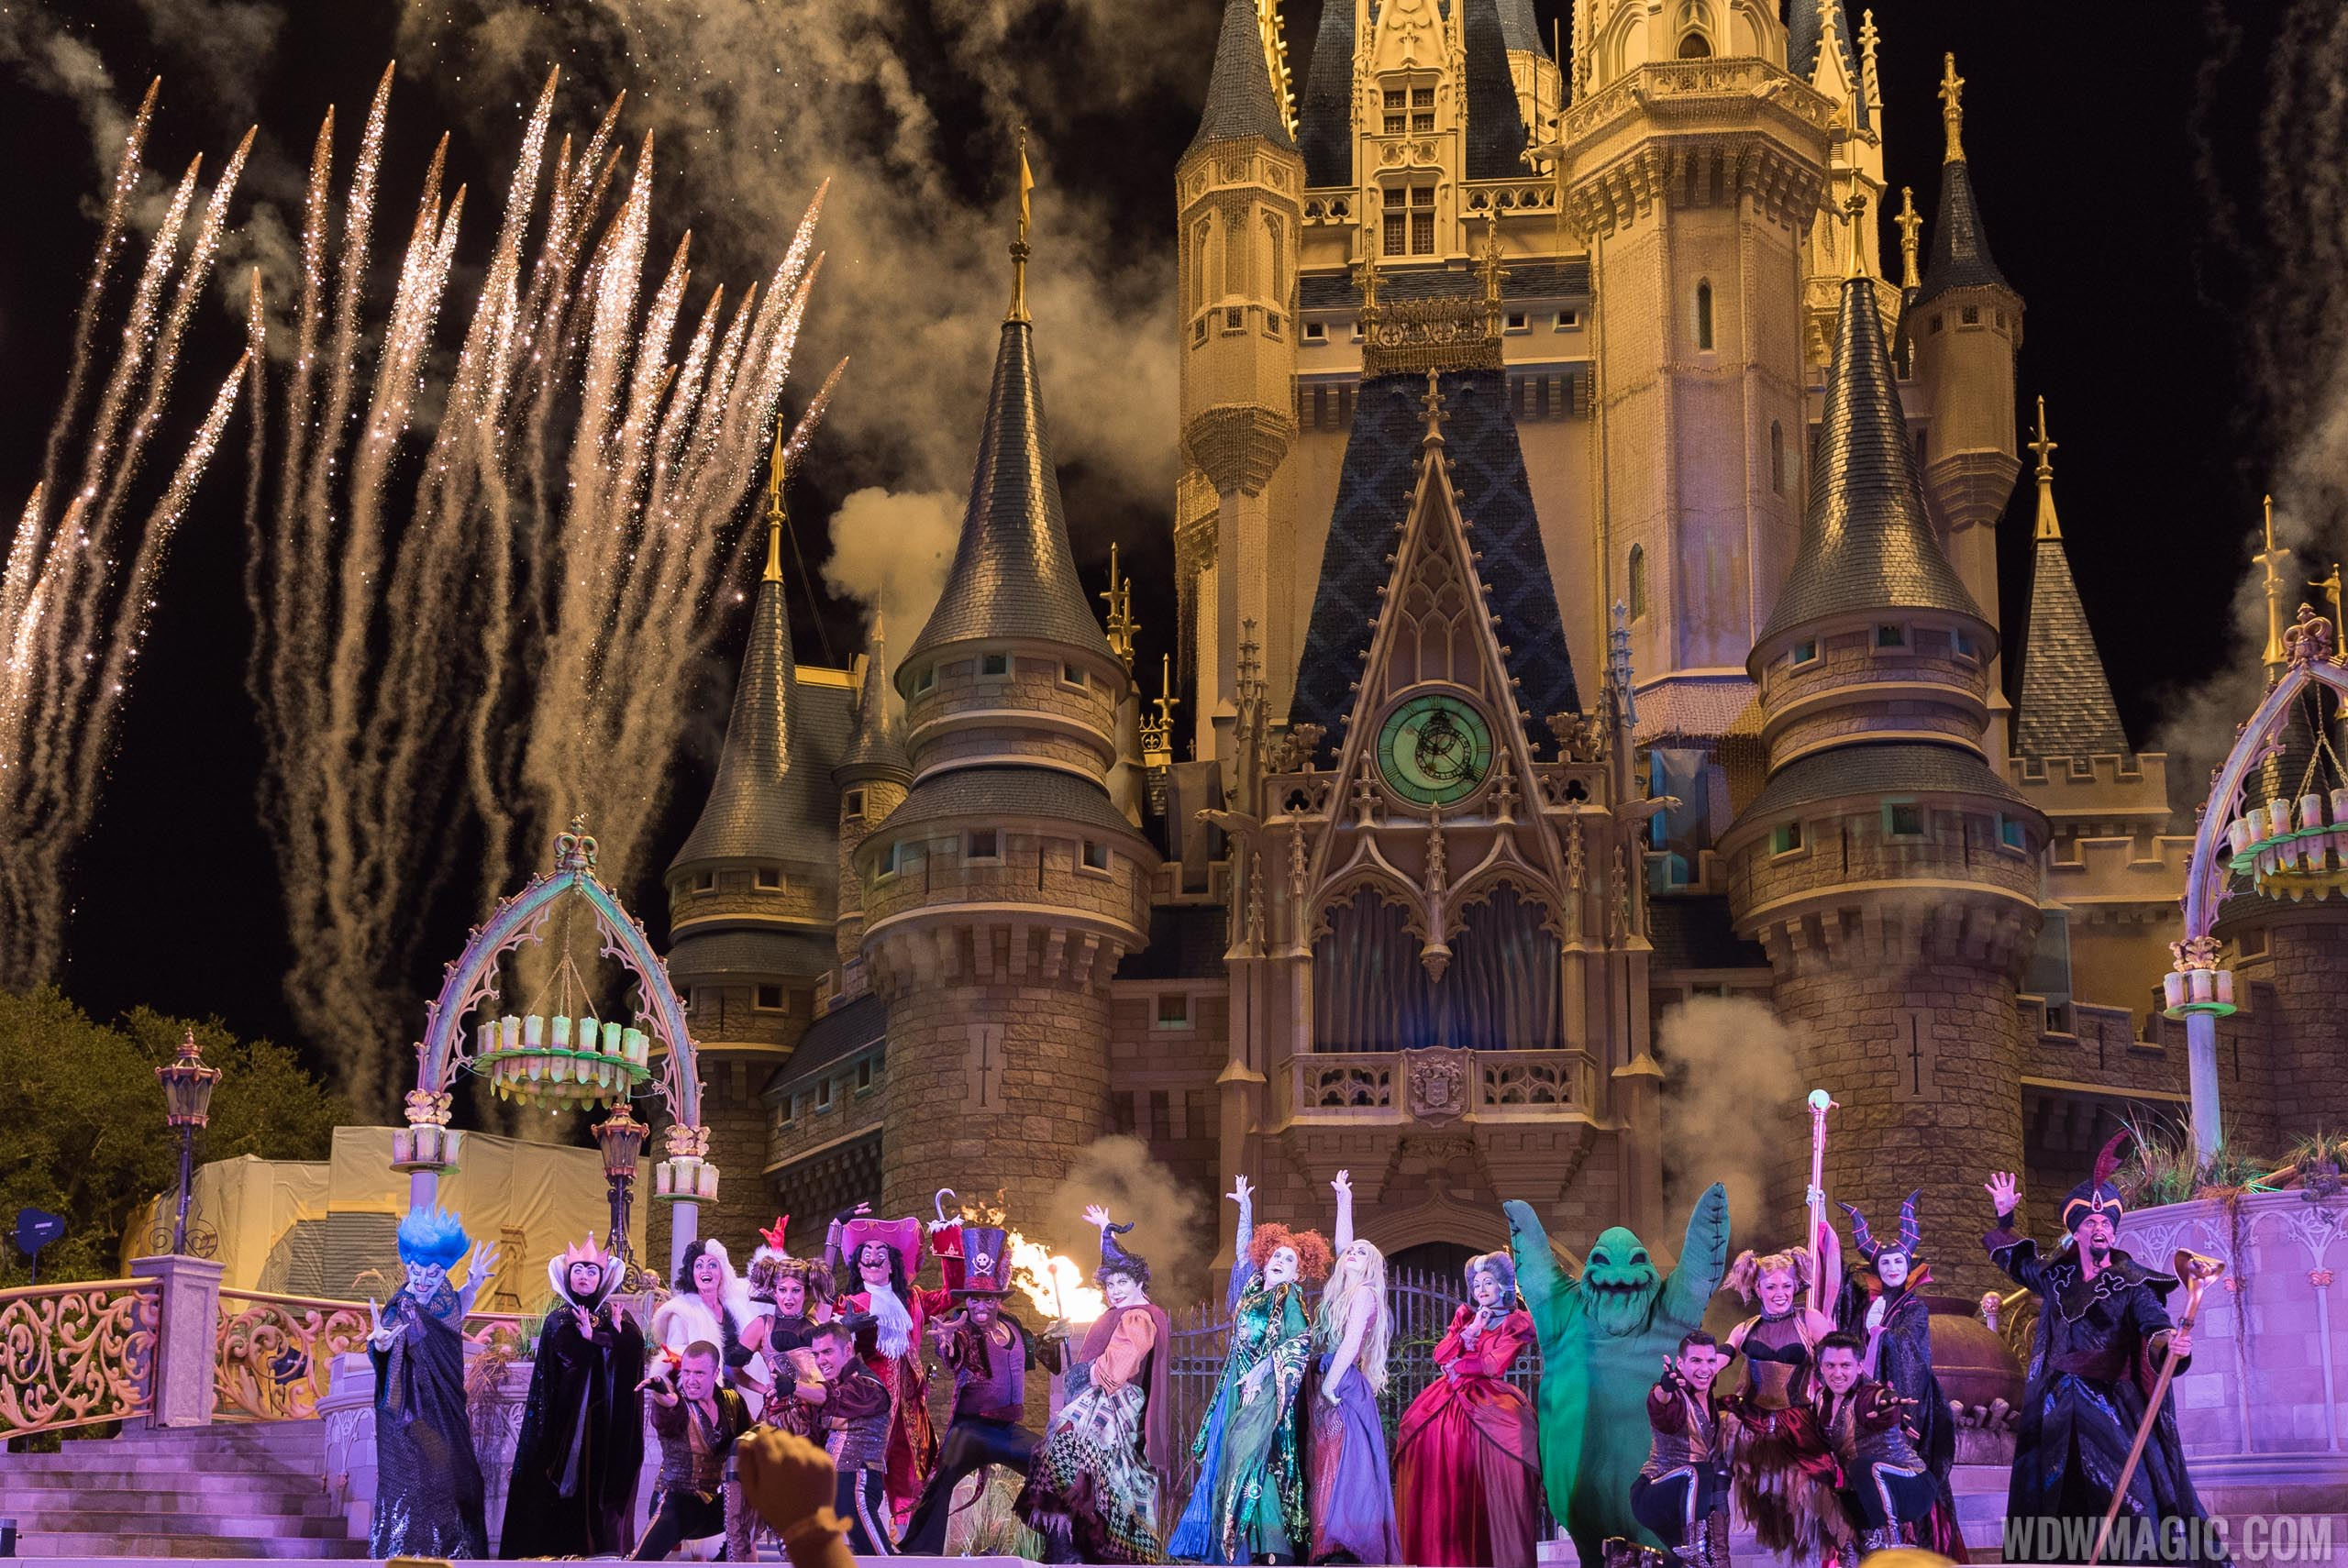 Hocus Pocus Villain Spelltacular - Full cast and fireworks